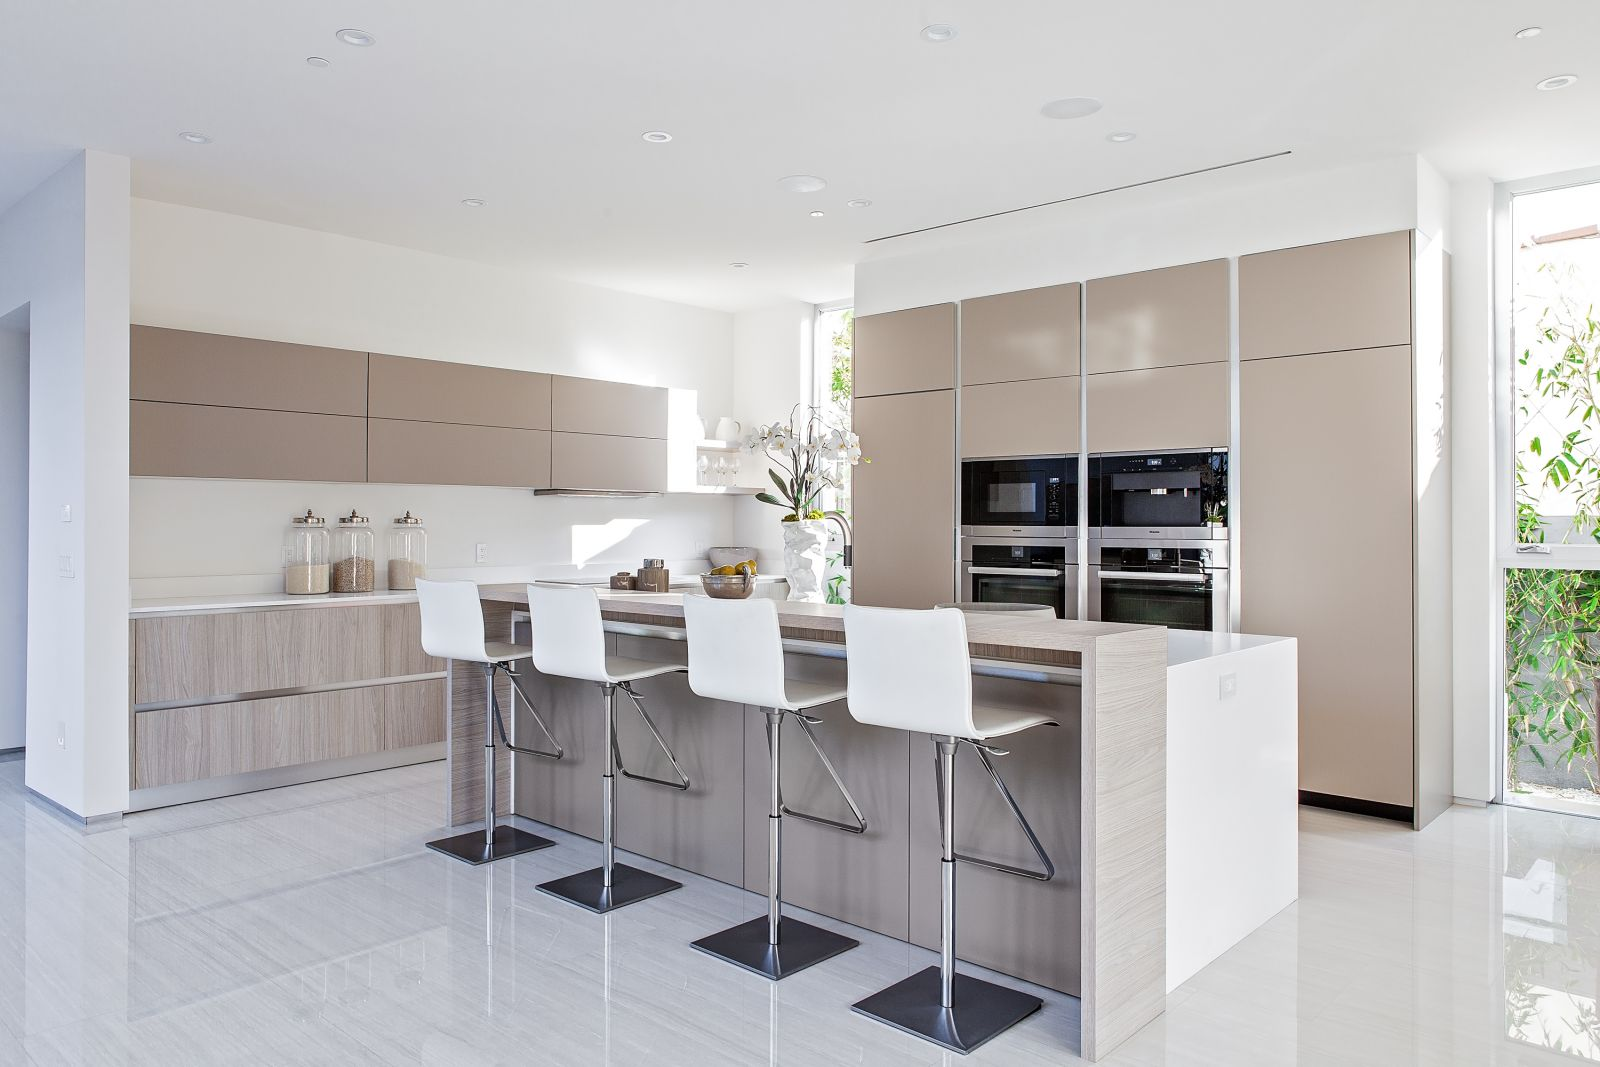 Rta Kitchen Cabinets Los Angeles Rta Kitchen Cabinets Los Angeles Wow Blog